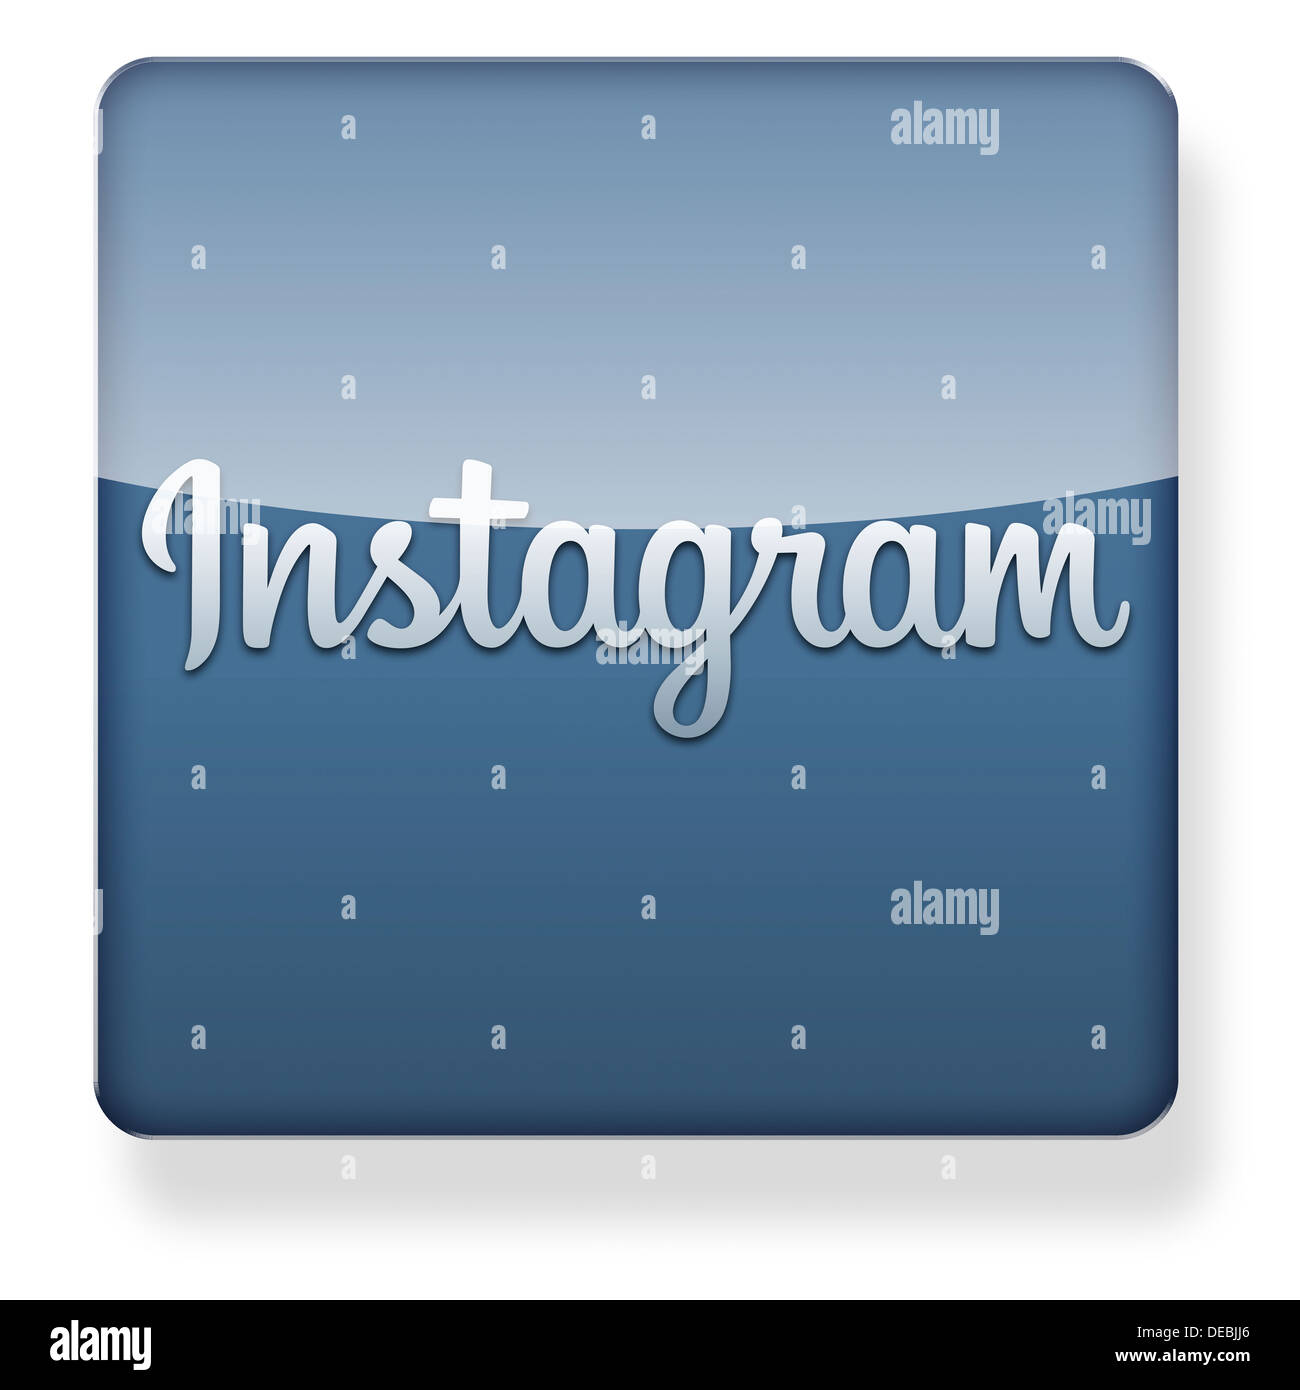 Instagram logo as an app icon. Clipping path included. - Stock Image